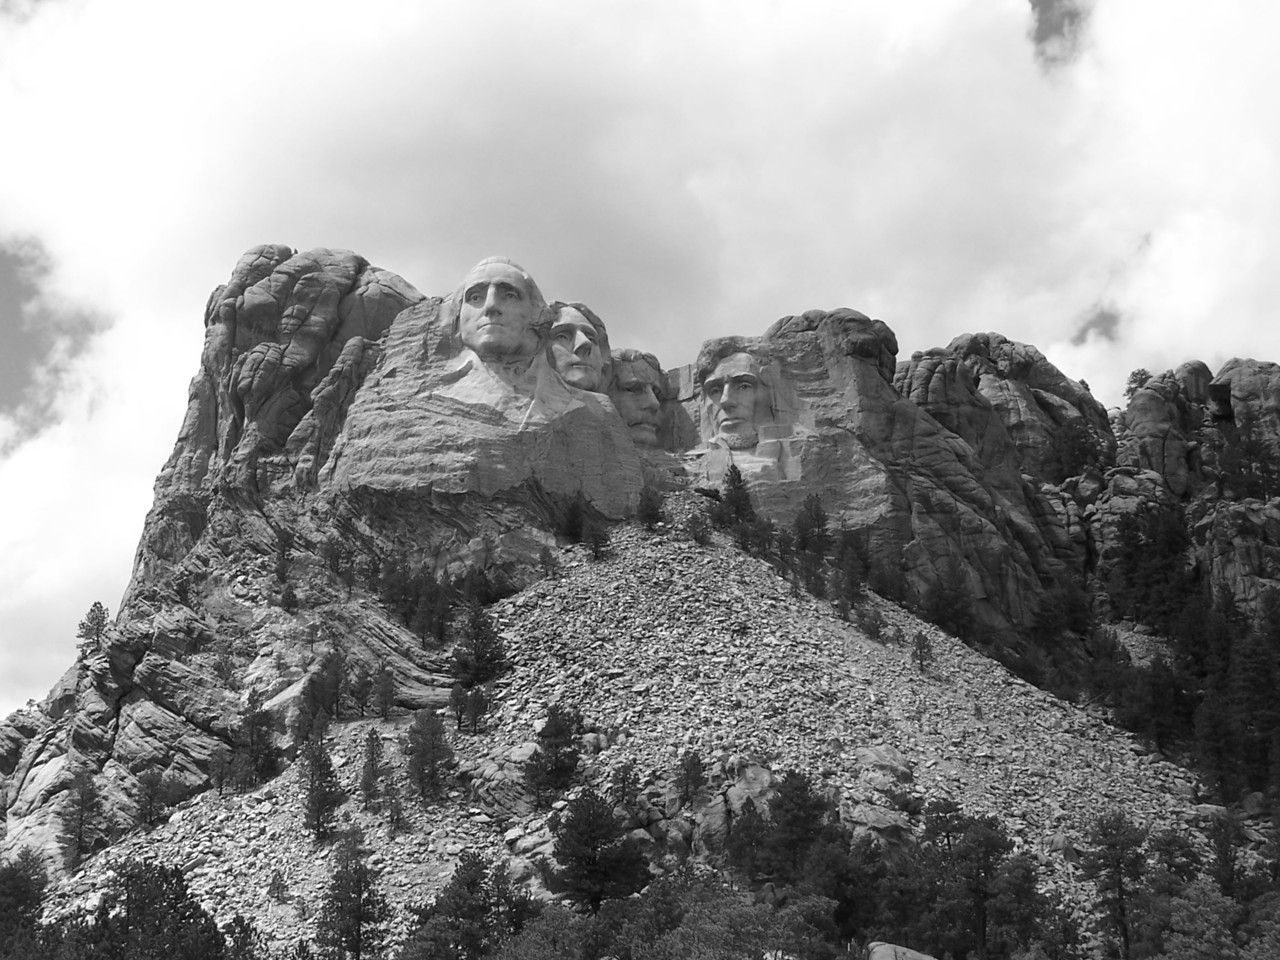 Mount Rushmore, South Dakota. (Dre's Addictions 2005)